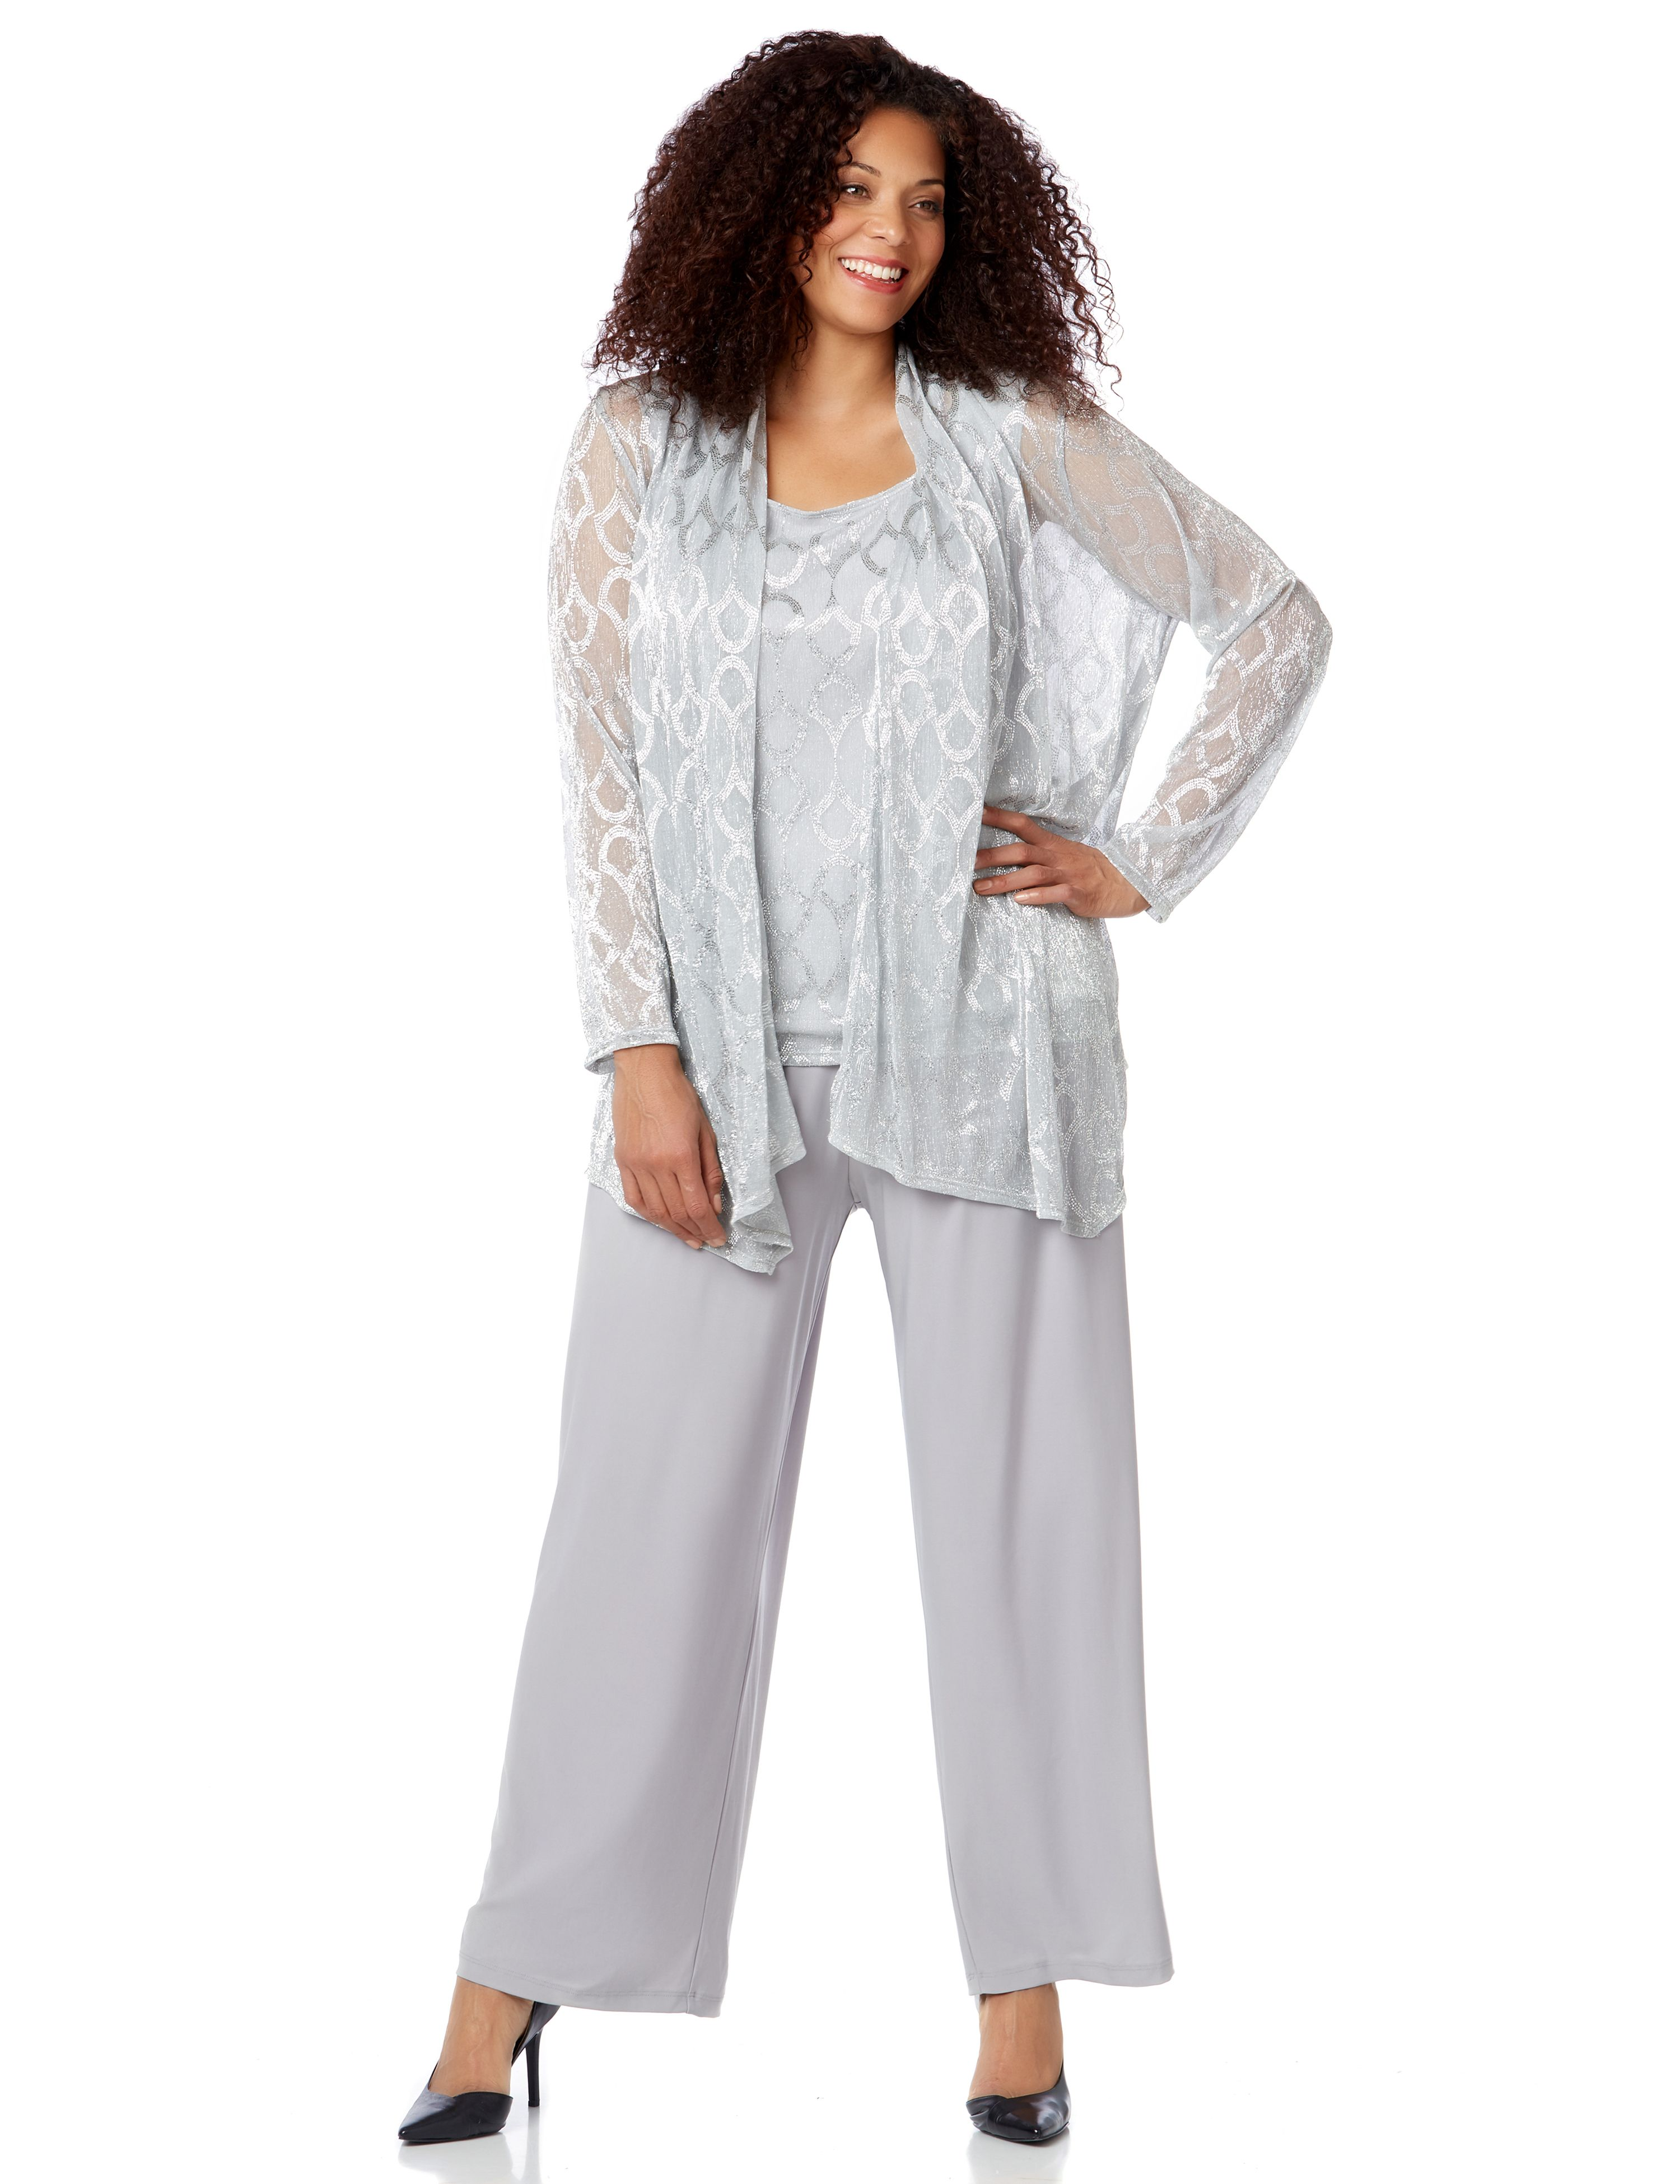 Lightstream Pantsuit 1090987 3 PC Metallic Knit Open Cas MP-300096167